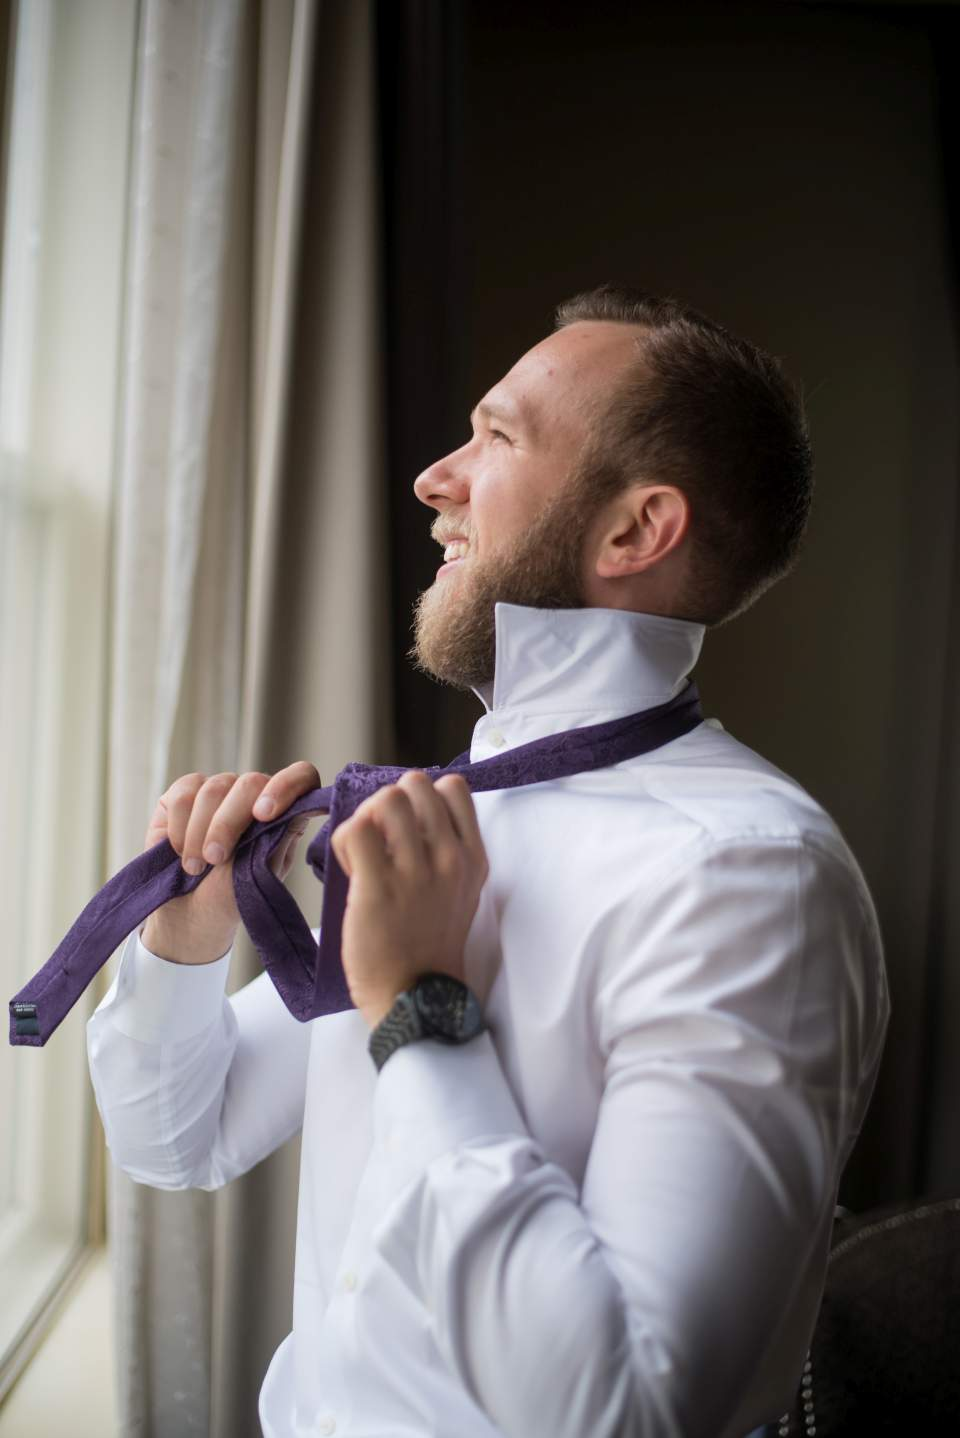 candid wedding photos of groom putting tie on